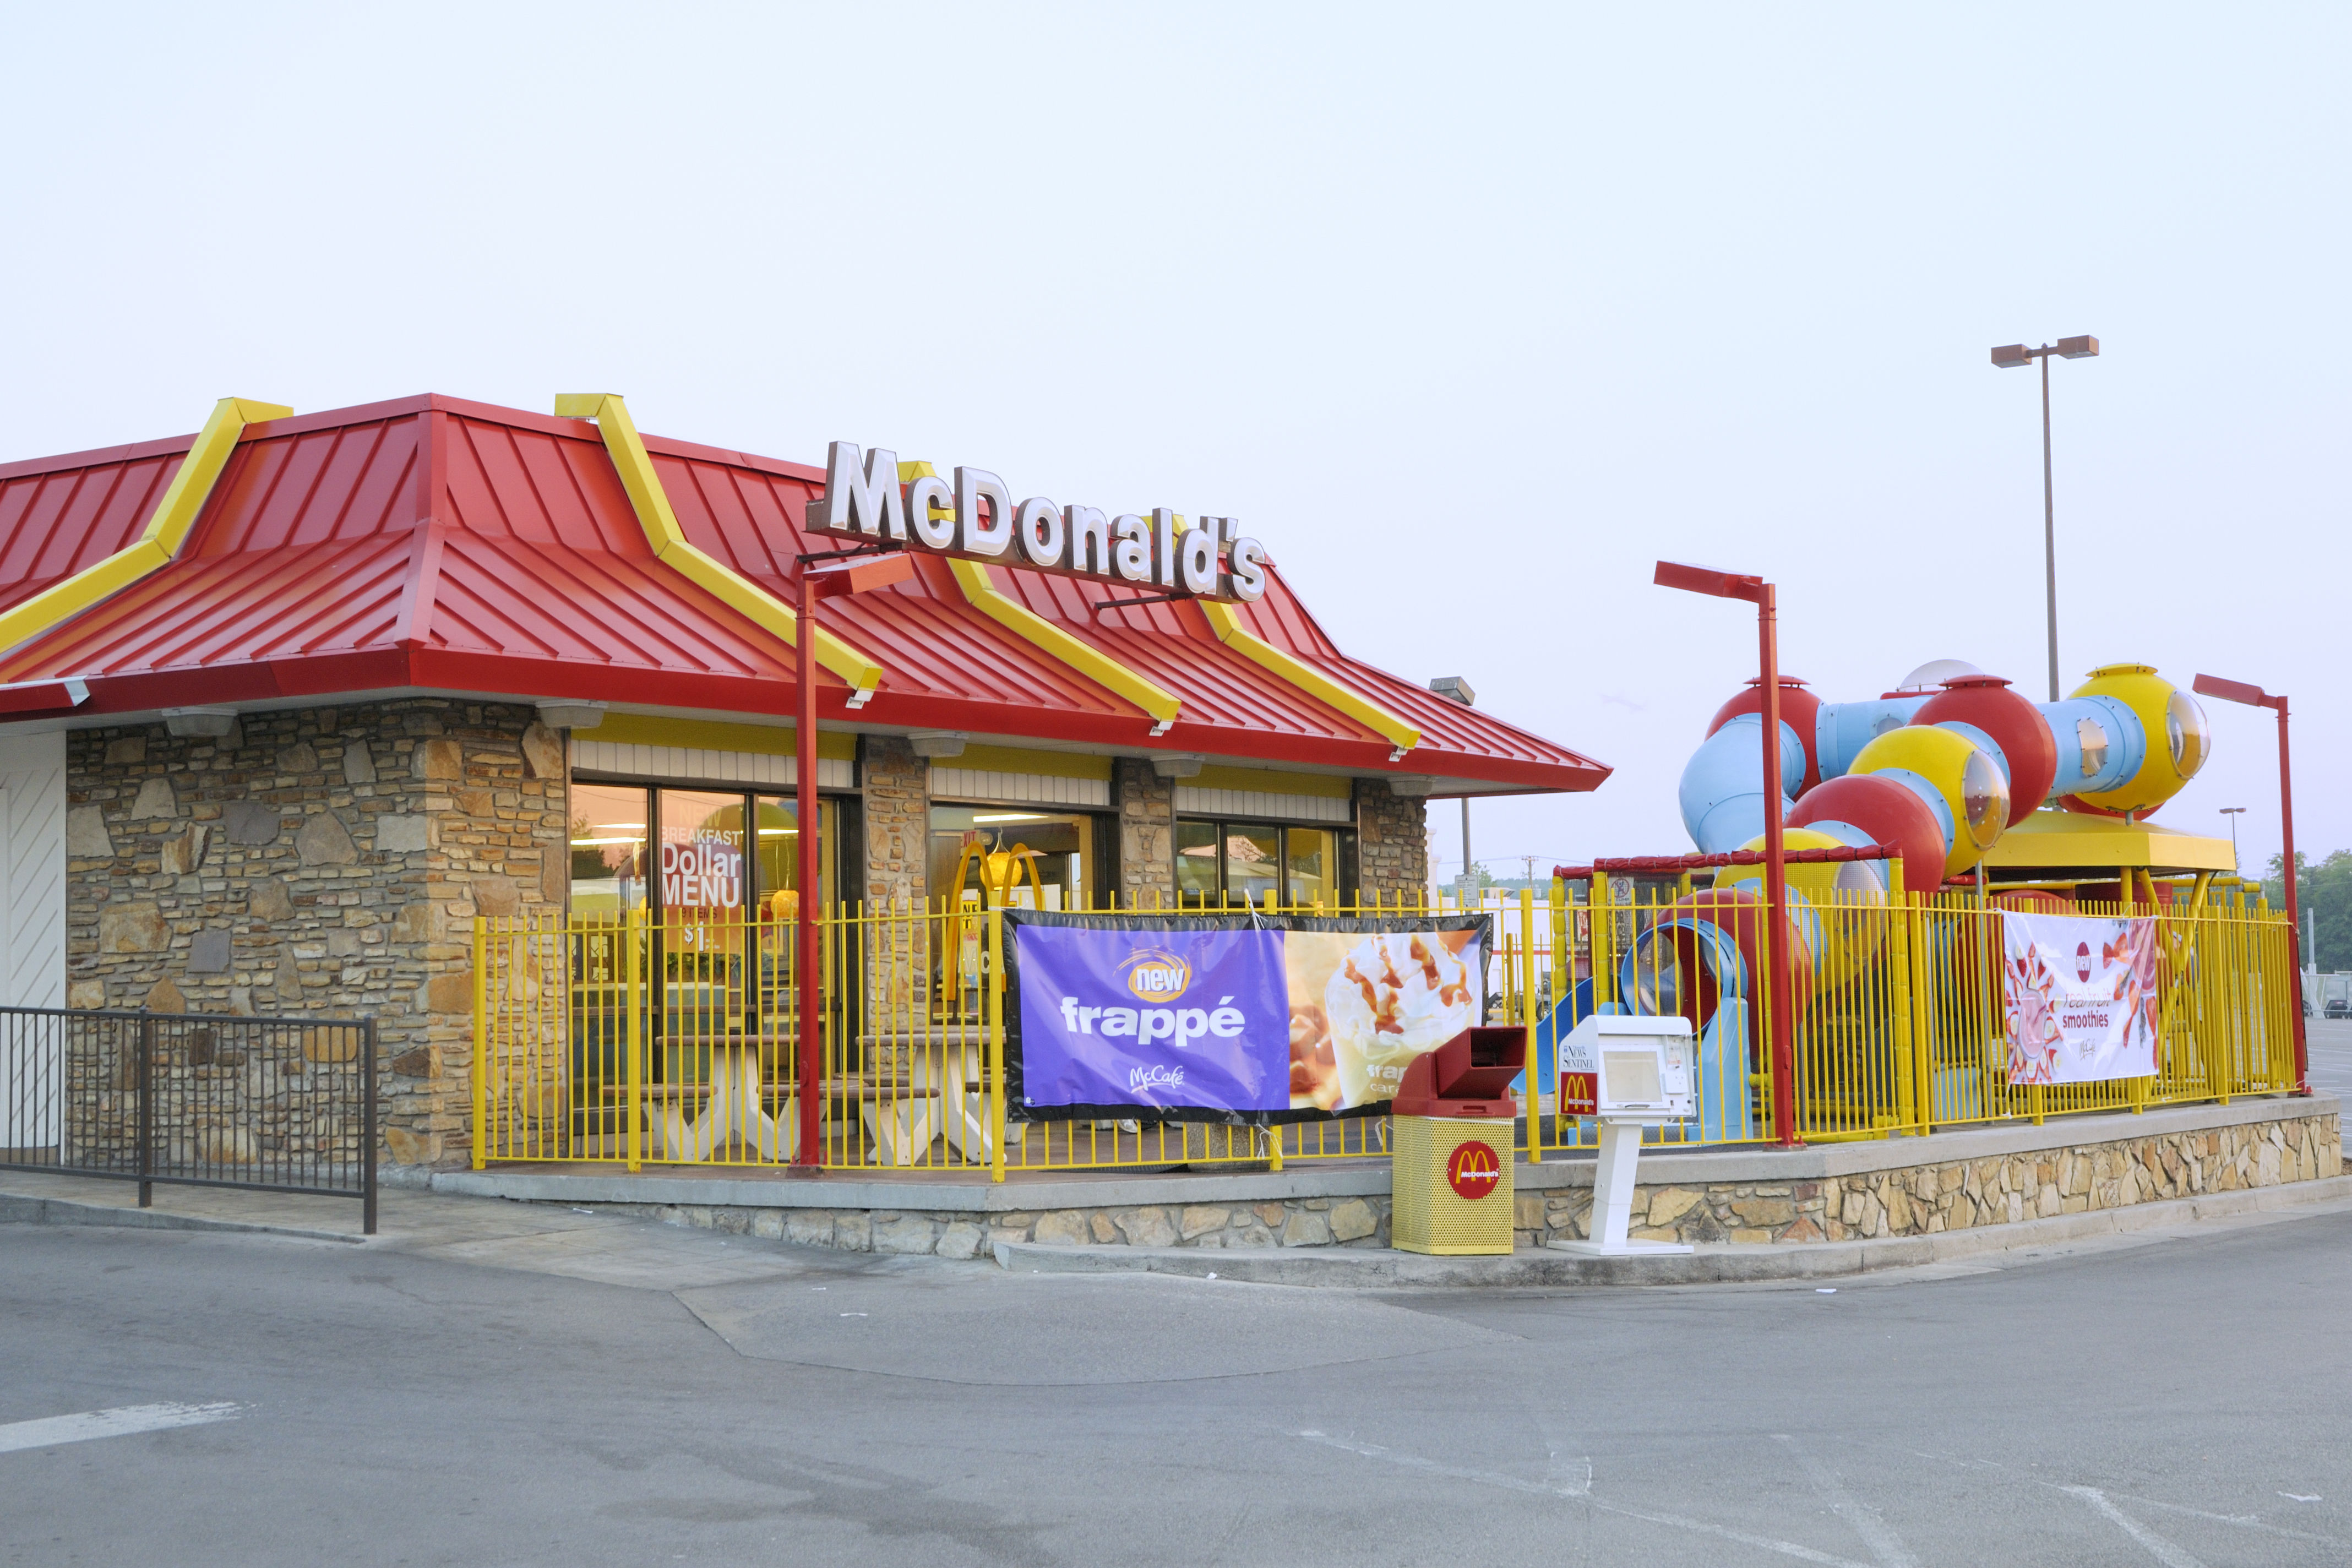 Where Have the McDonald's PlayPlaces Gone?